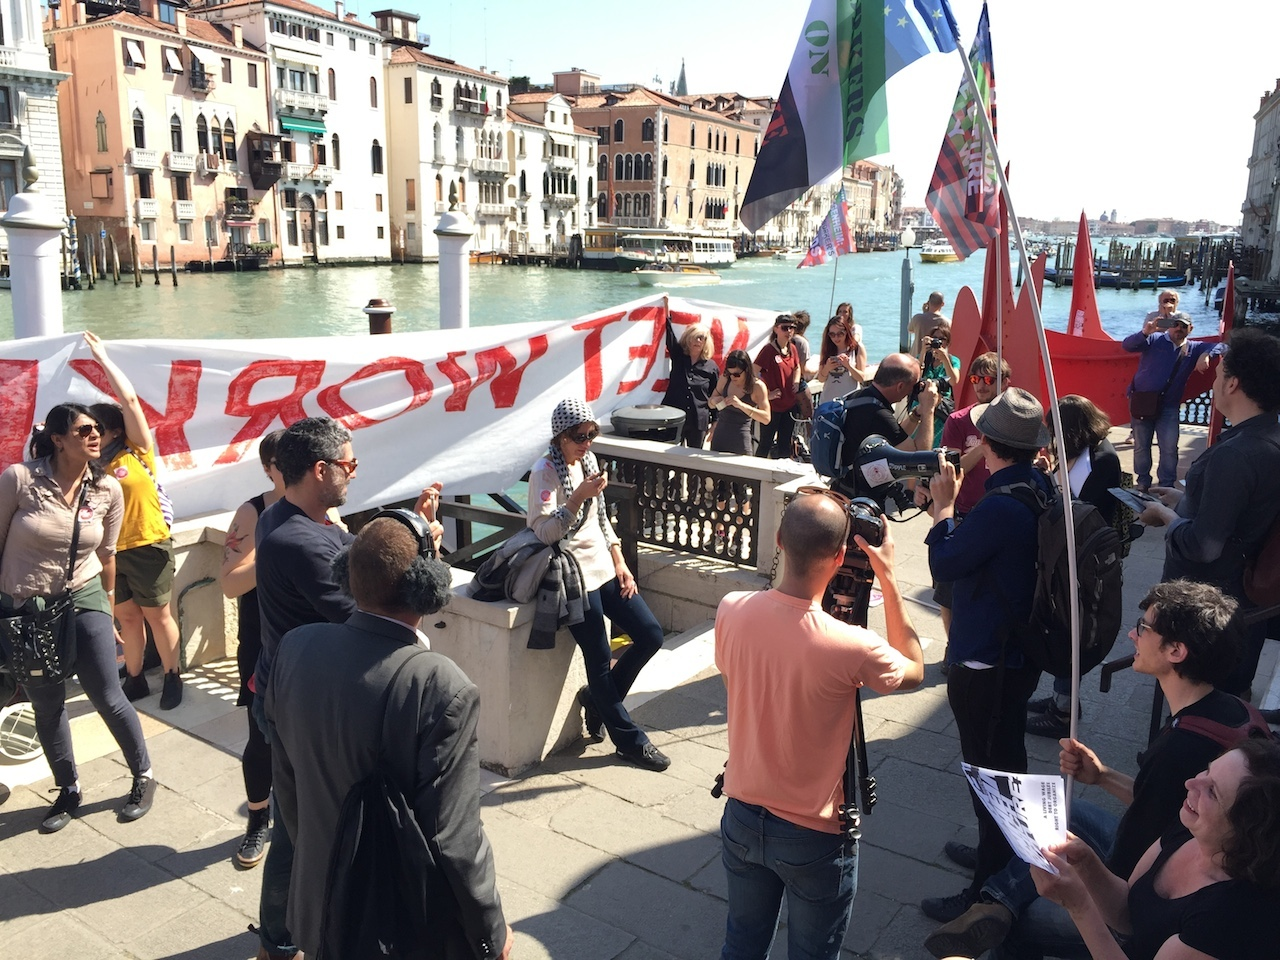 Protesters outside the Peggy Guggenheim Collection